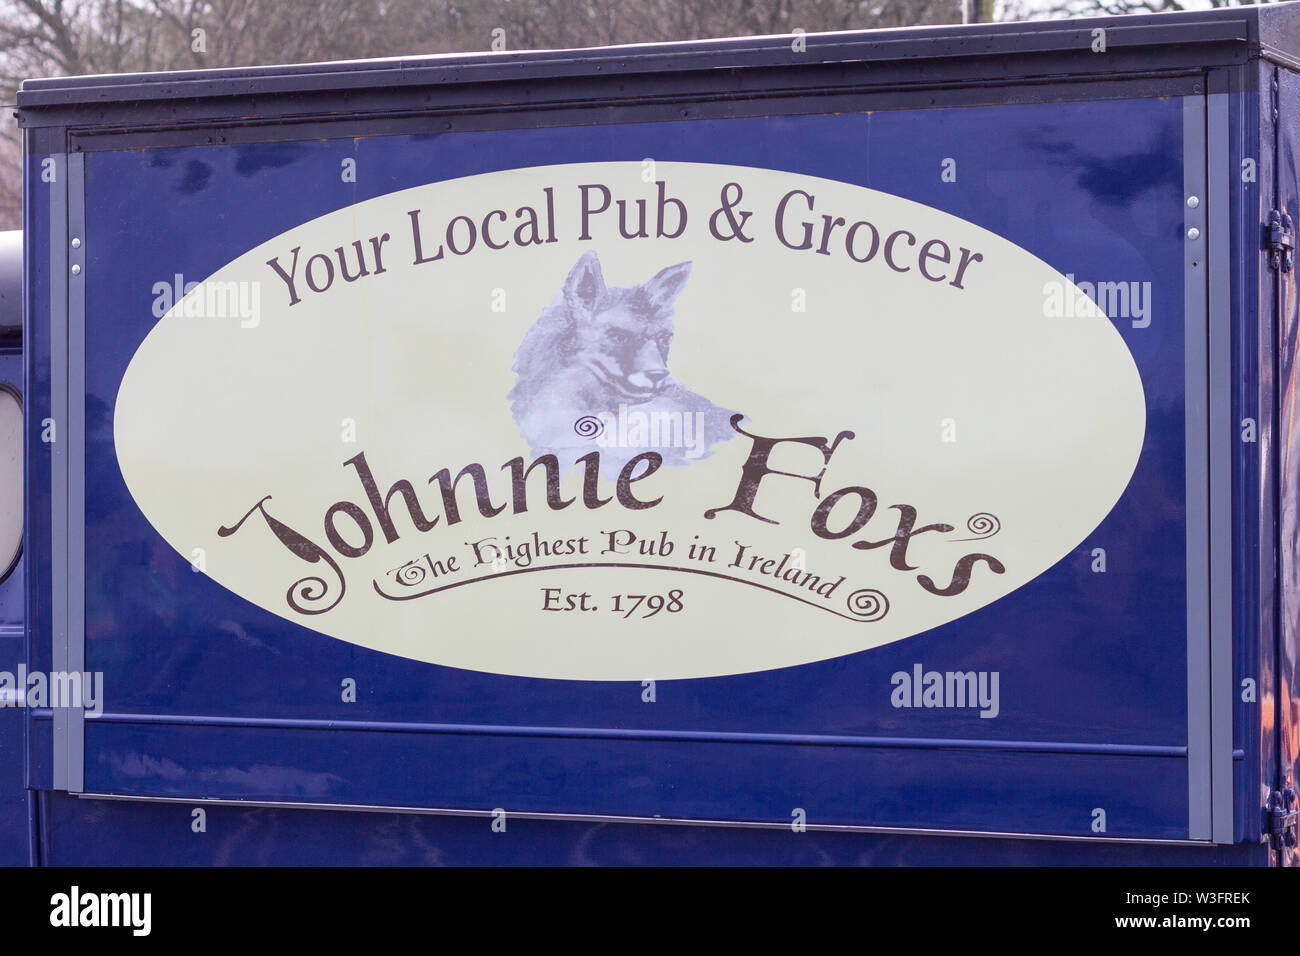 Glencullen, Ireland -January 12, 2019 - Johnnie Foxs Pub is a popular tourist destination near Dublin specializing in Irish food and entertainment. - Stock Image